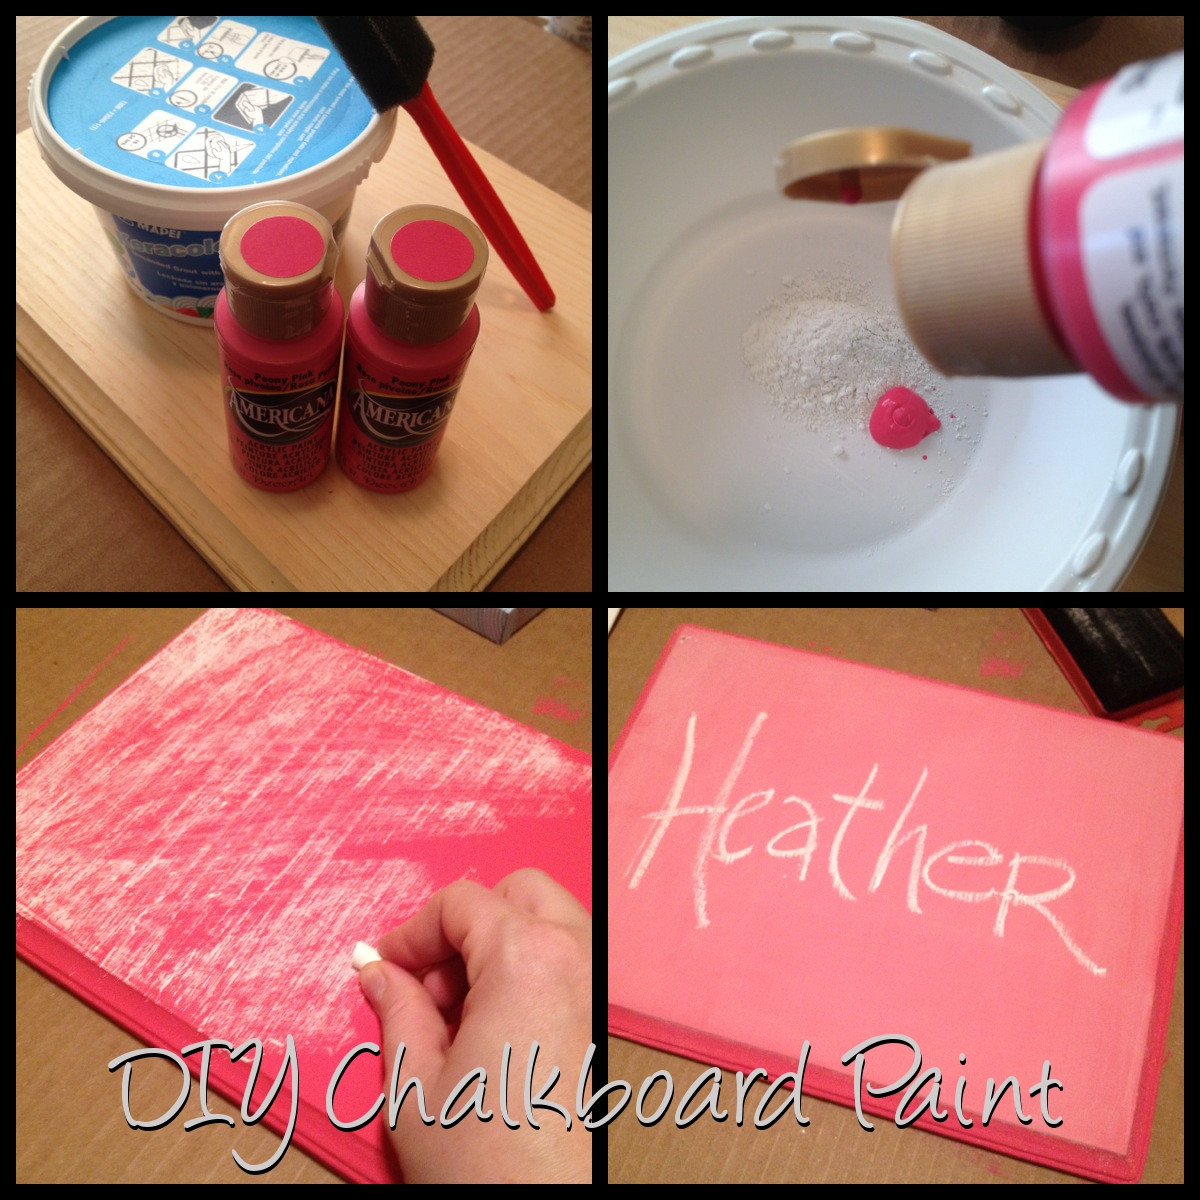 Best ideas about DIY Chalkboard Paint . Save or Pin DIY Chalkboard Paint 7 52 Now.